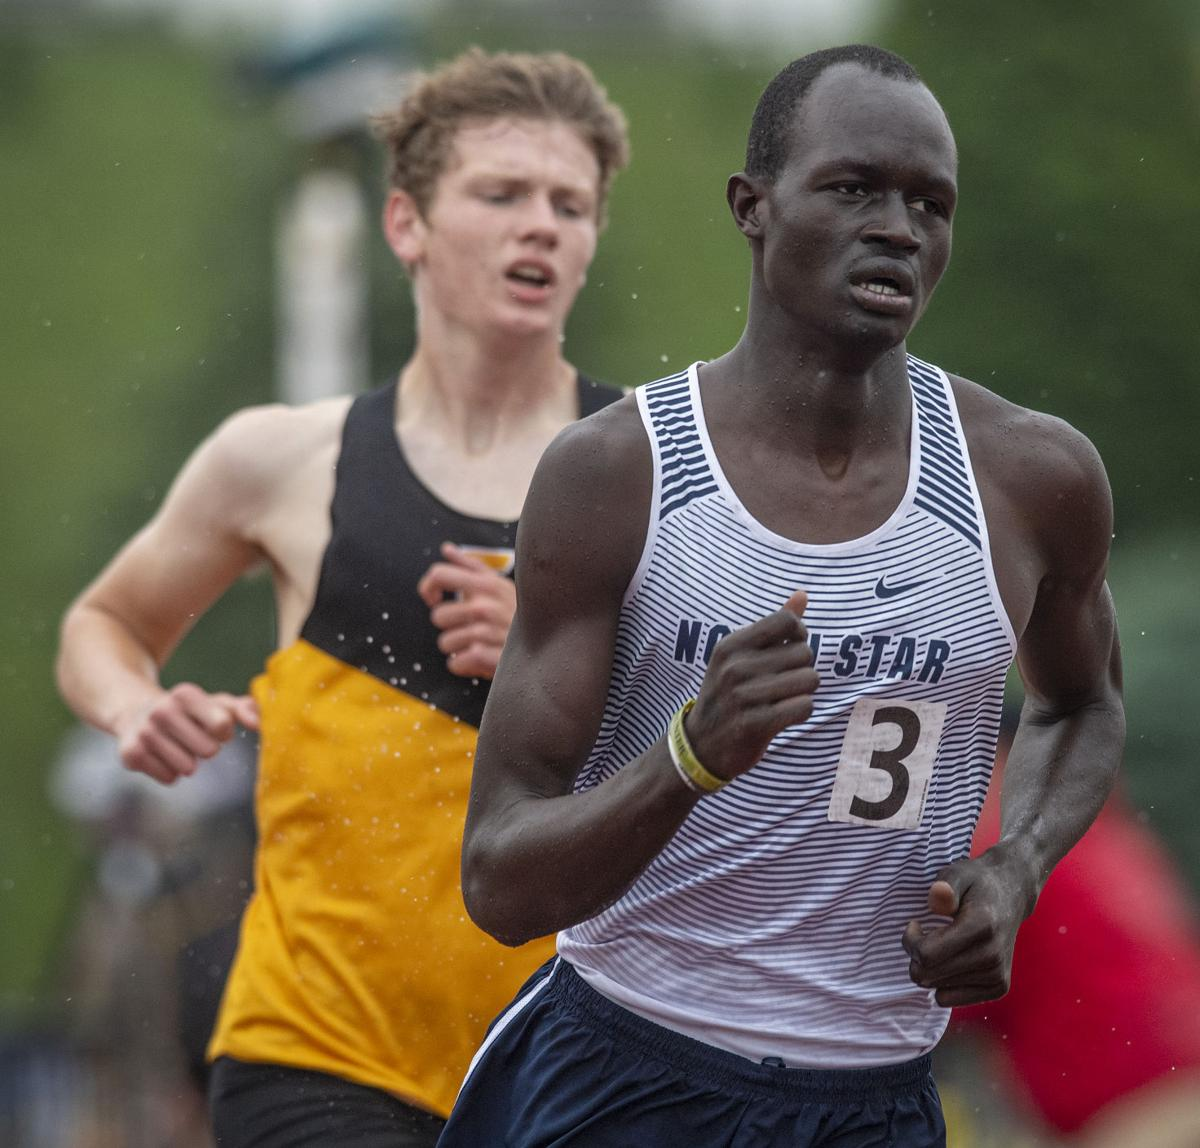 State track and field, 5.20